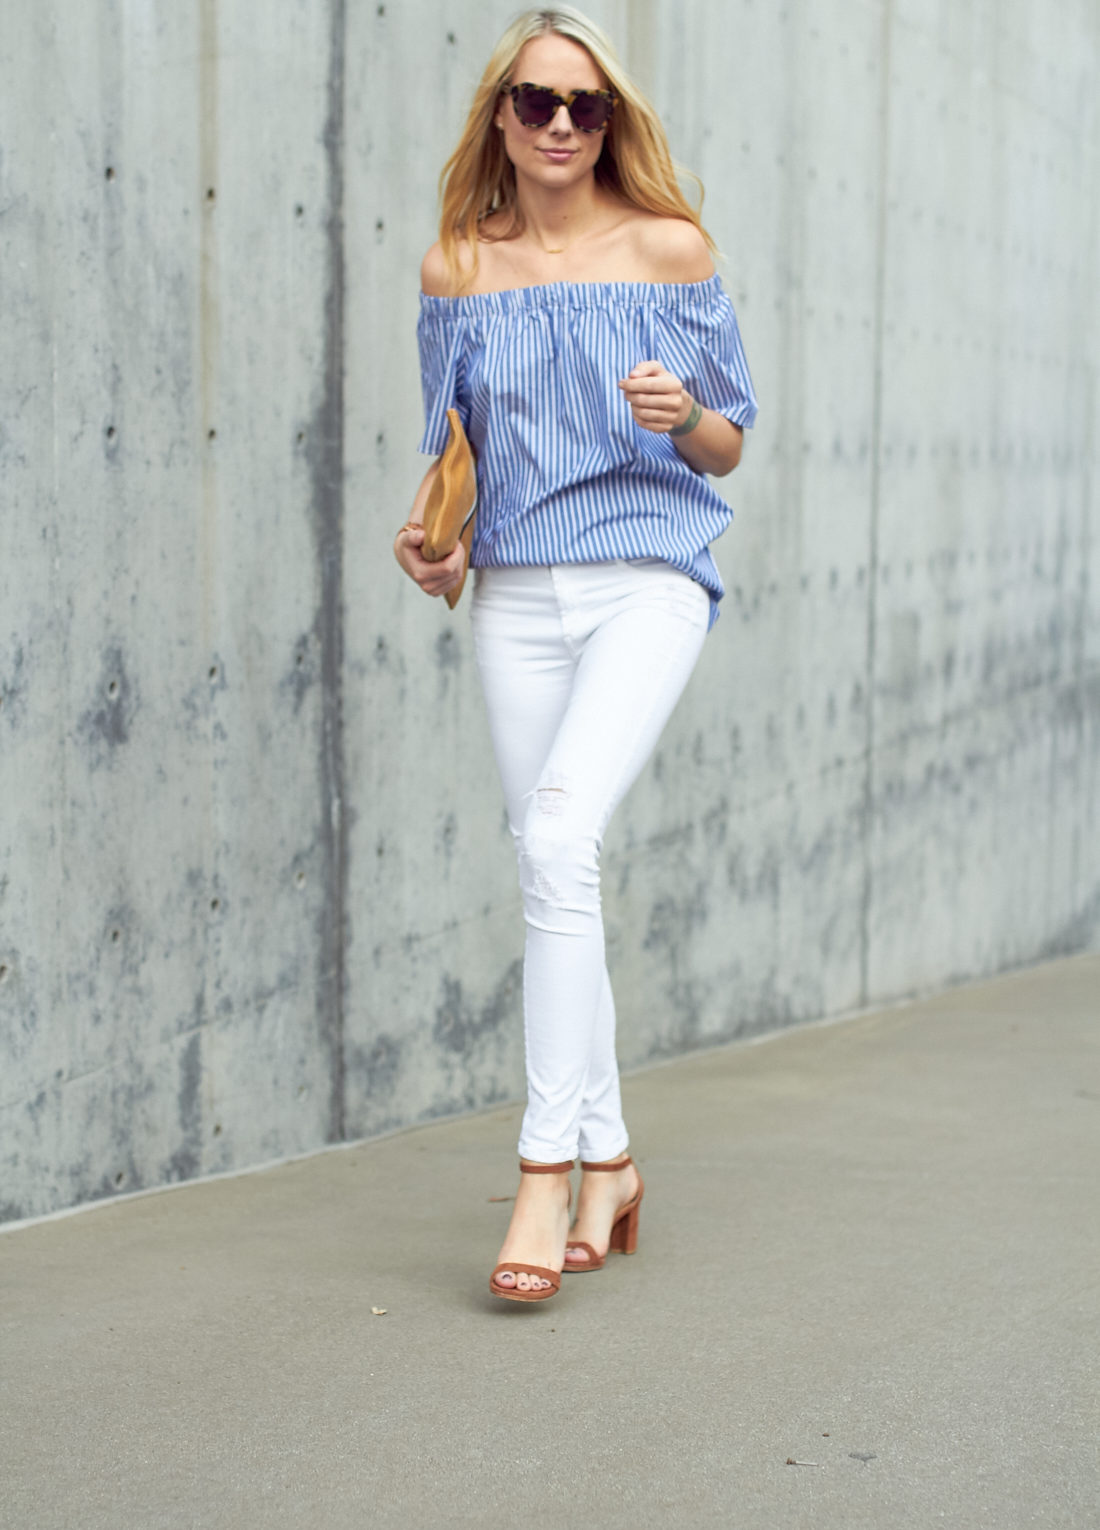 fashion-jackson-banana-republic-blue-stripe-off-the-shoulder-top-white-skinny-jeans-stuart-weitzman-nearly-nude-sandals-karen-walker-number-one-sunglasses